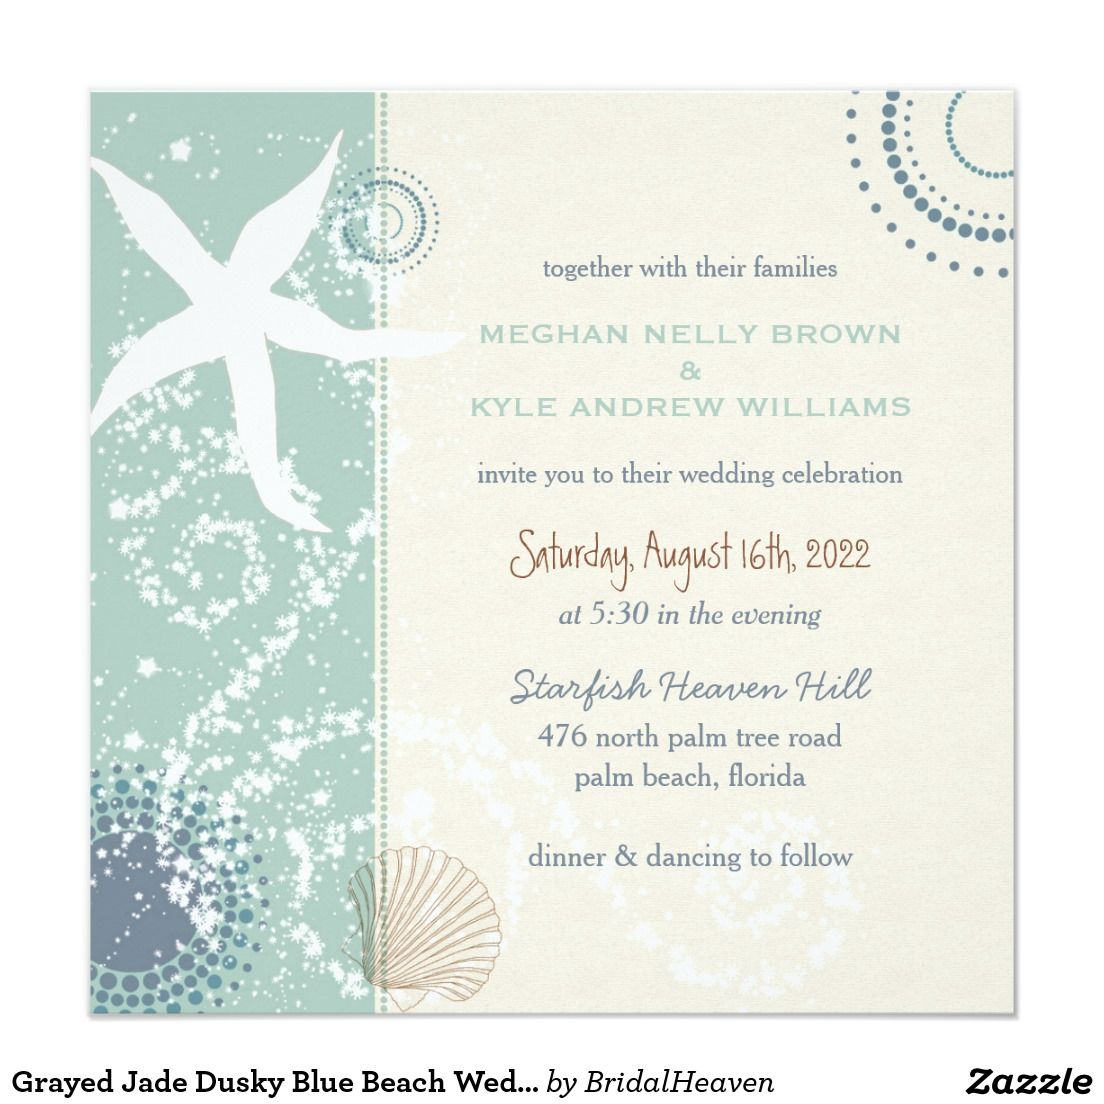 Grayed Jade Dusky Blue Beach Wedding Card | Beach themed weddings ...